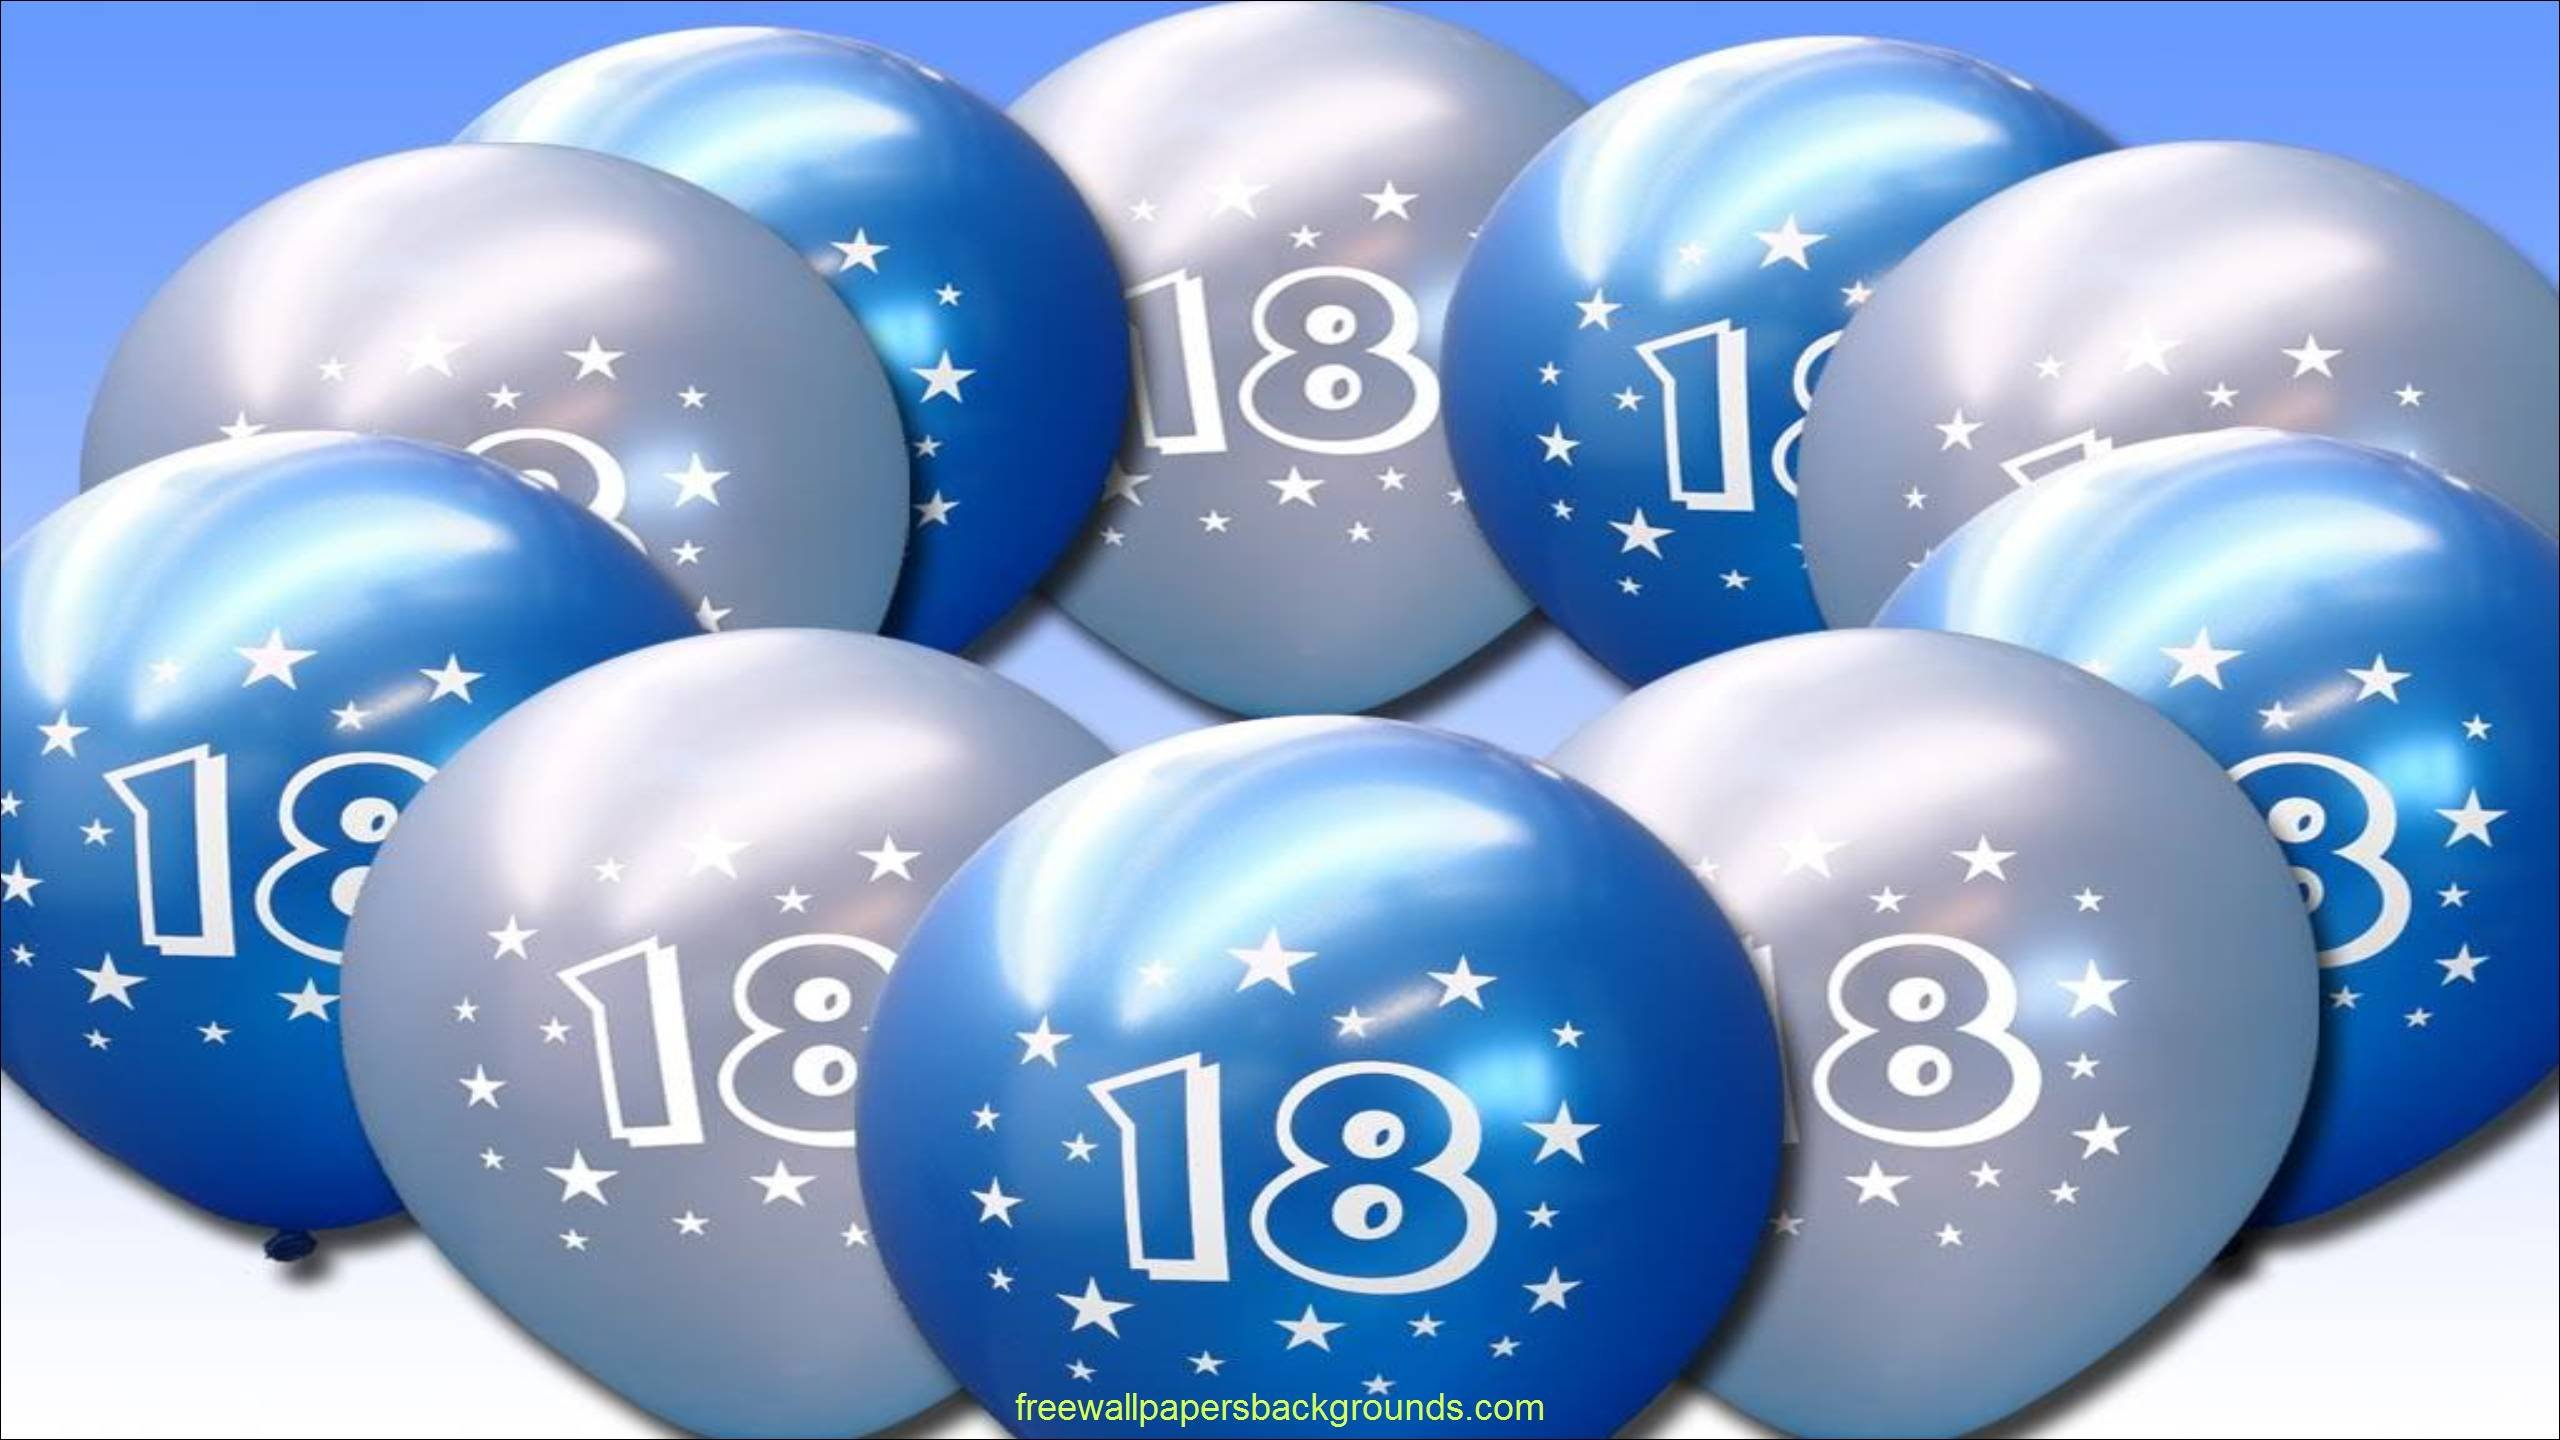 happy 18th birthday photo frame ; birthday-wallpaper-frames-wallpapers-balloons-stylish-perfect-celebrating-images